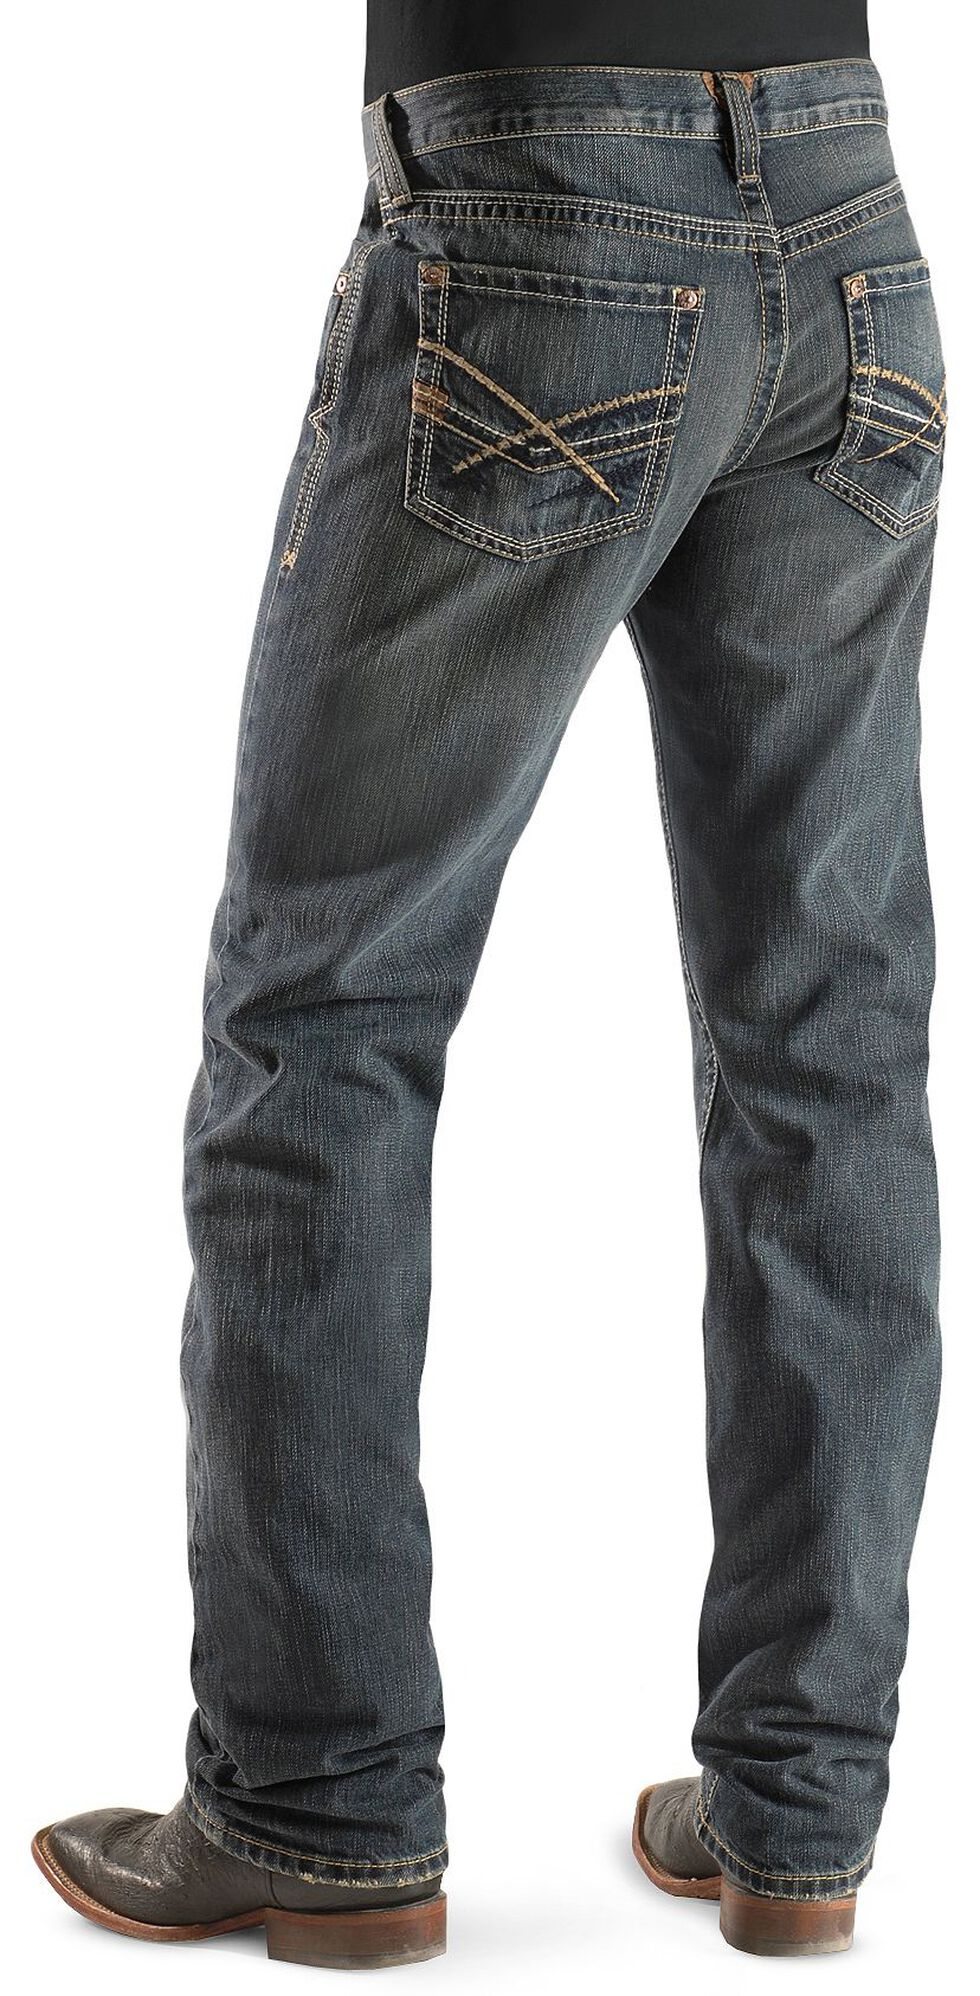 Ariat M5 Arrowhead Deadrun Wash Jeans, Denim, hi-res